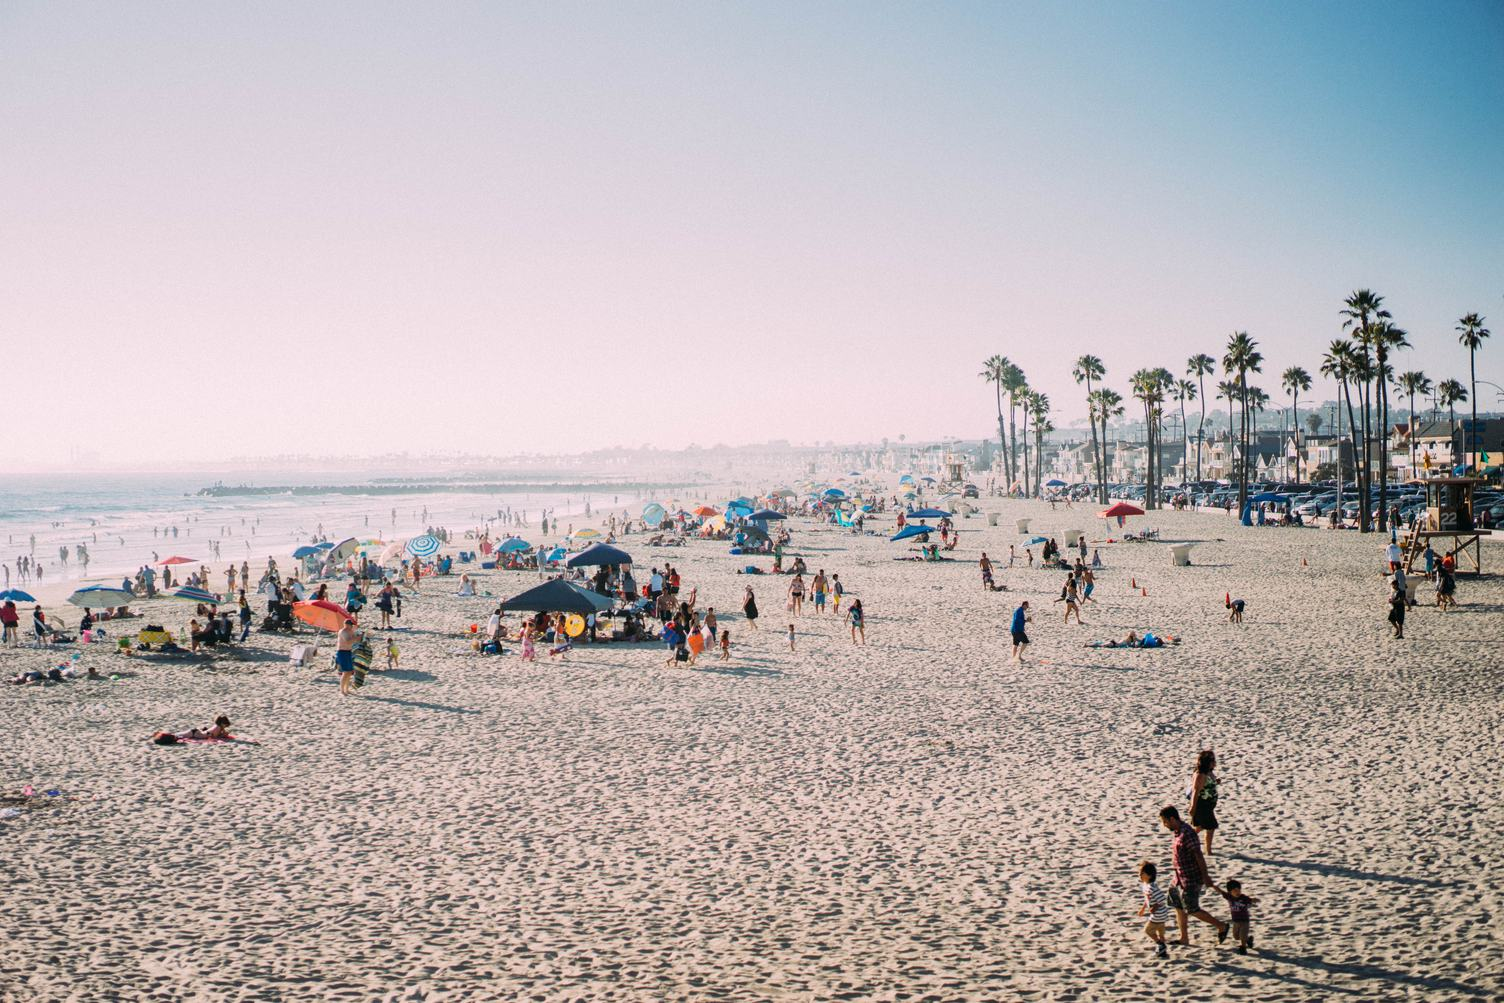 People on the Beach and Palm Trees in the Distance